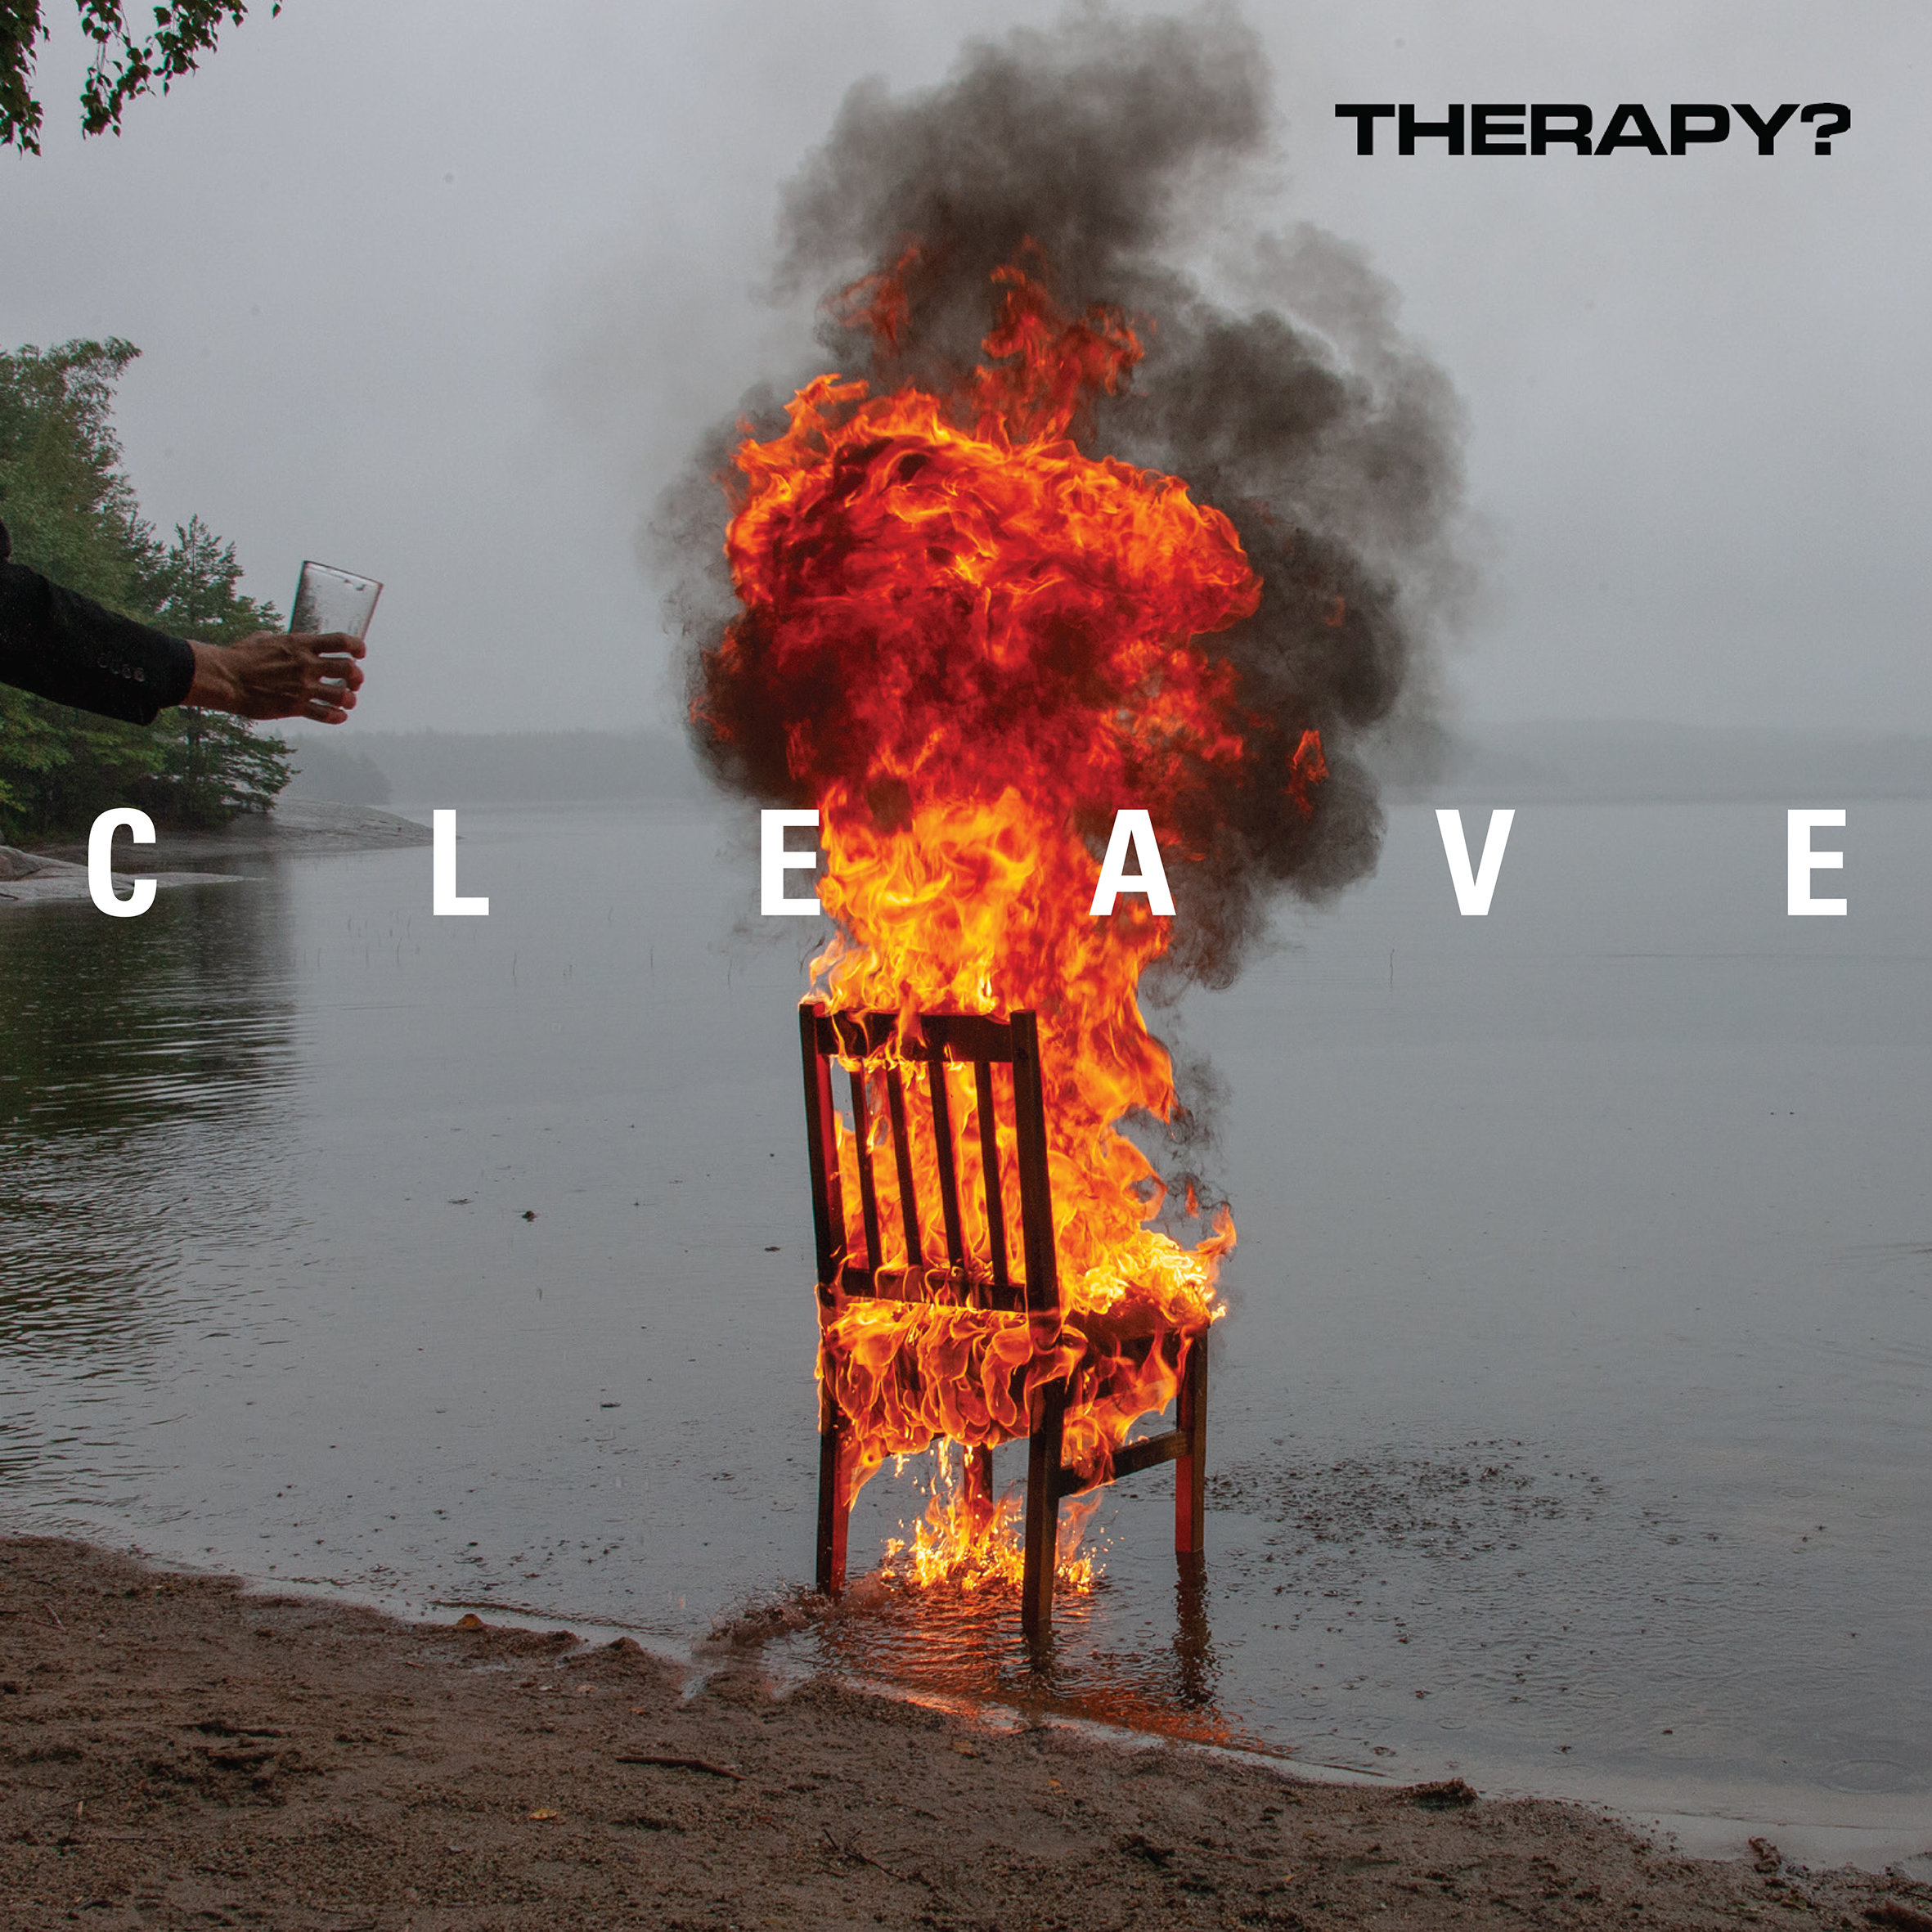 Therapy? : Cleave